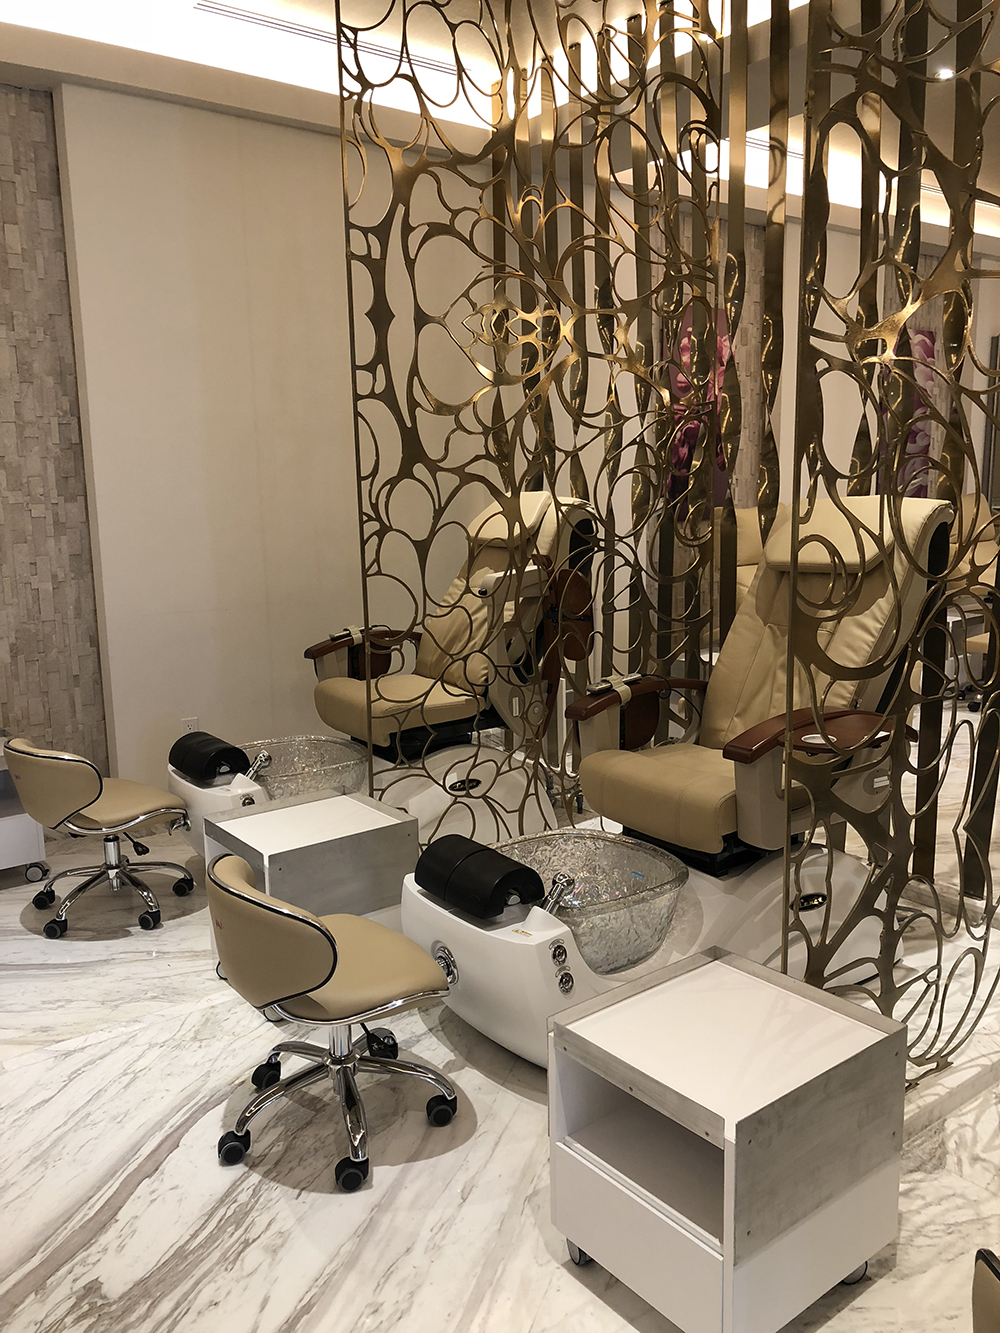 The spa also has a full-service beauty salon.